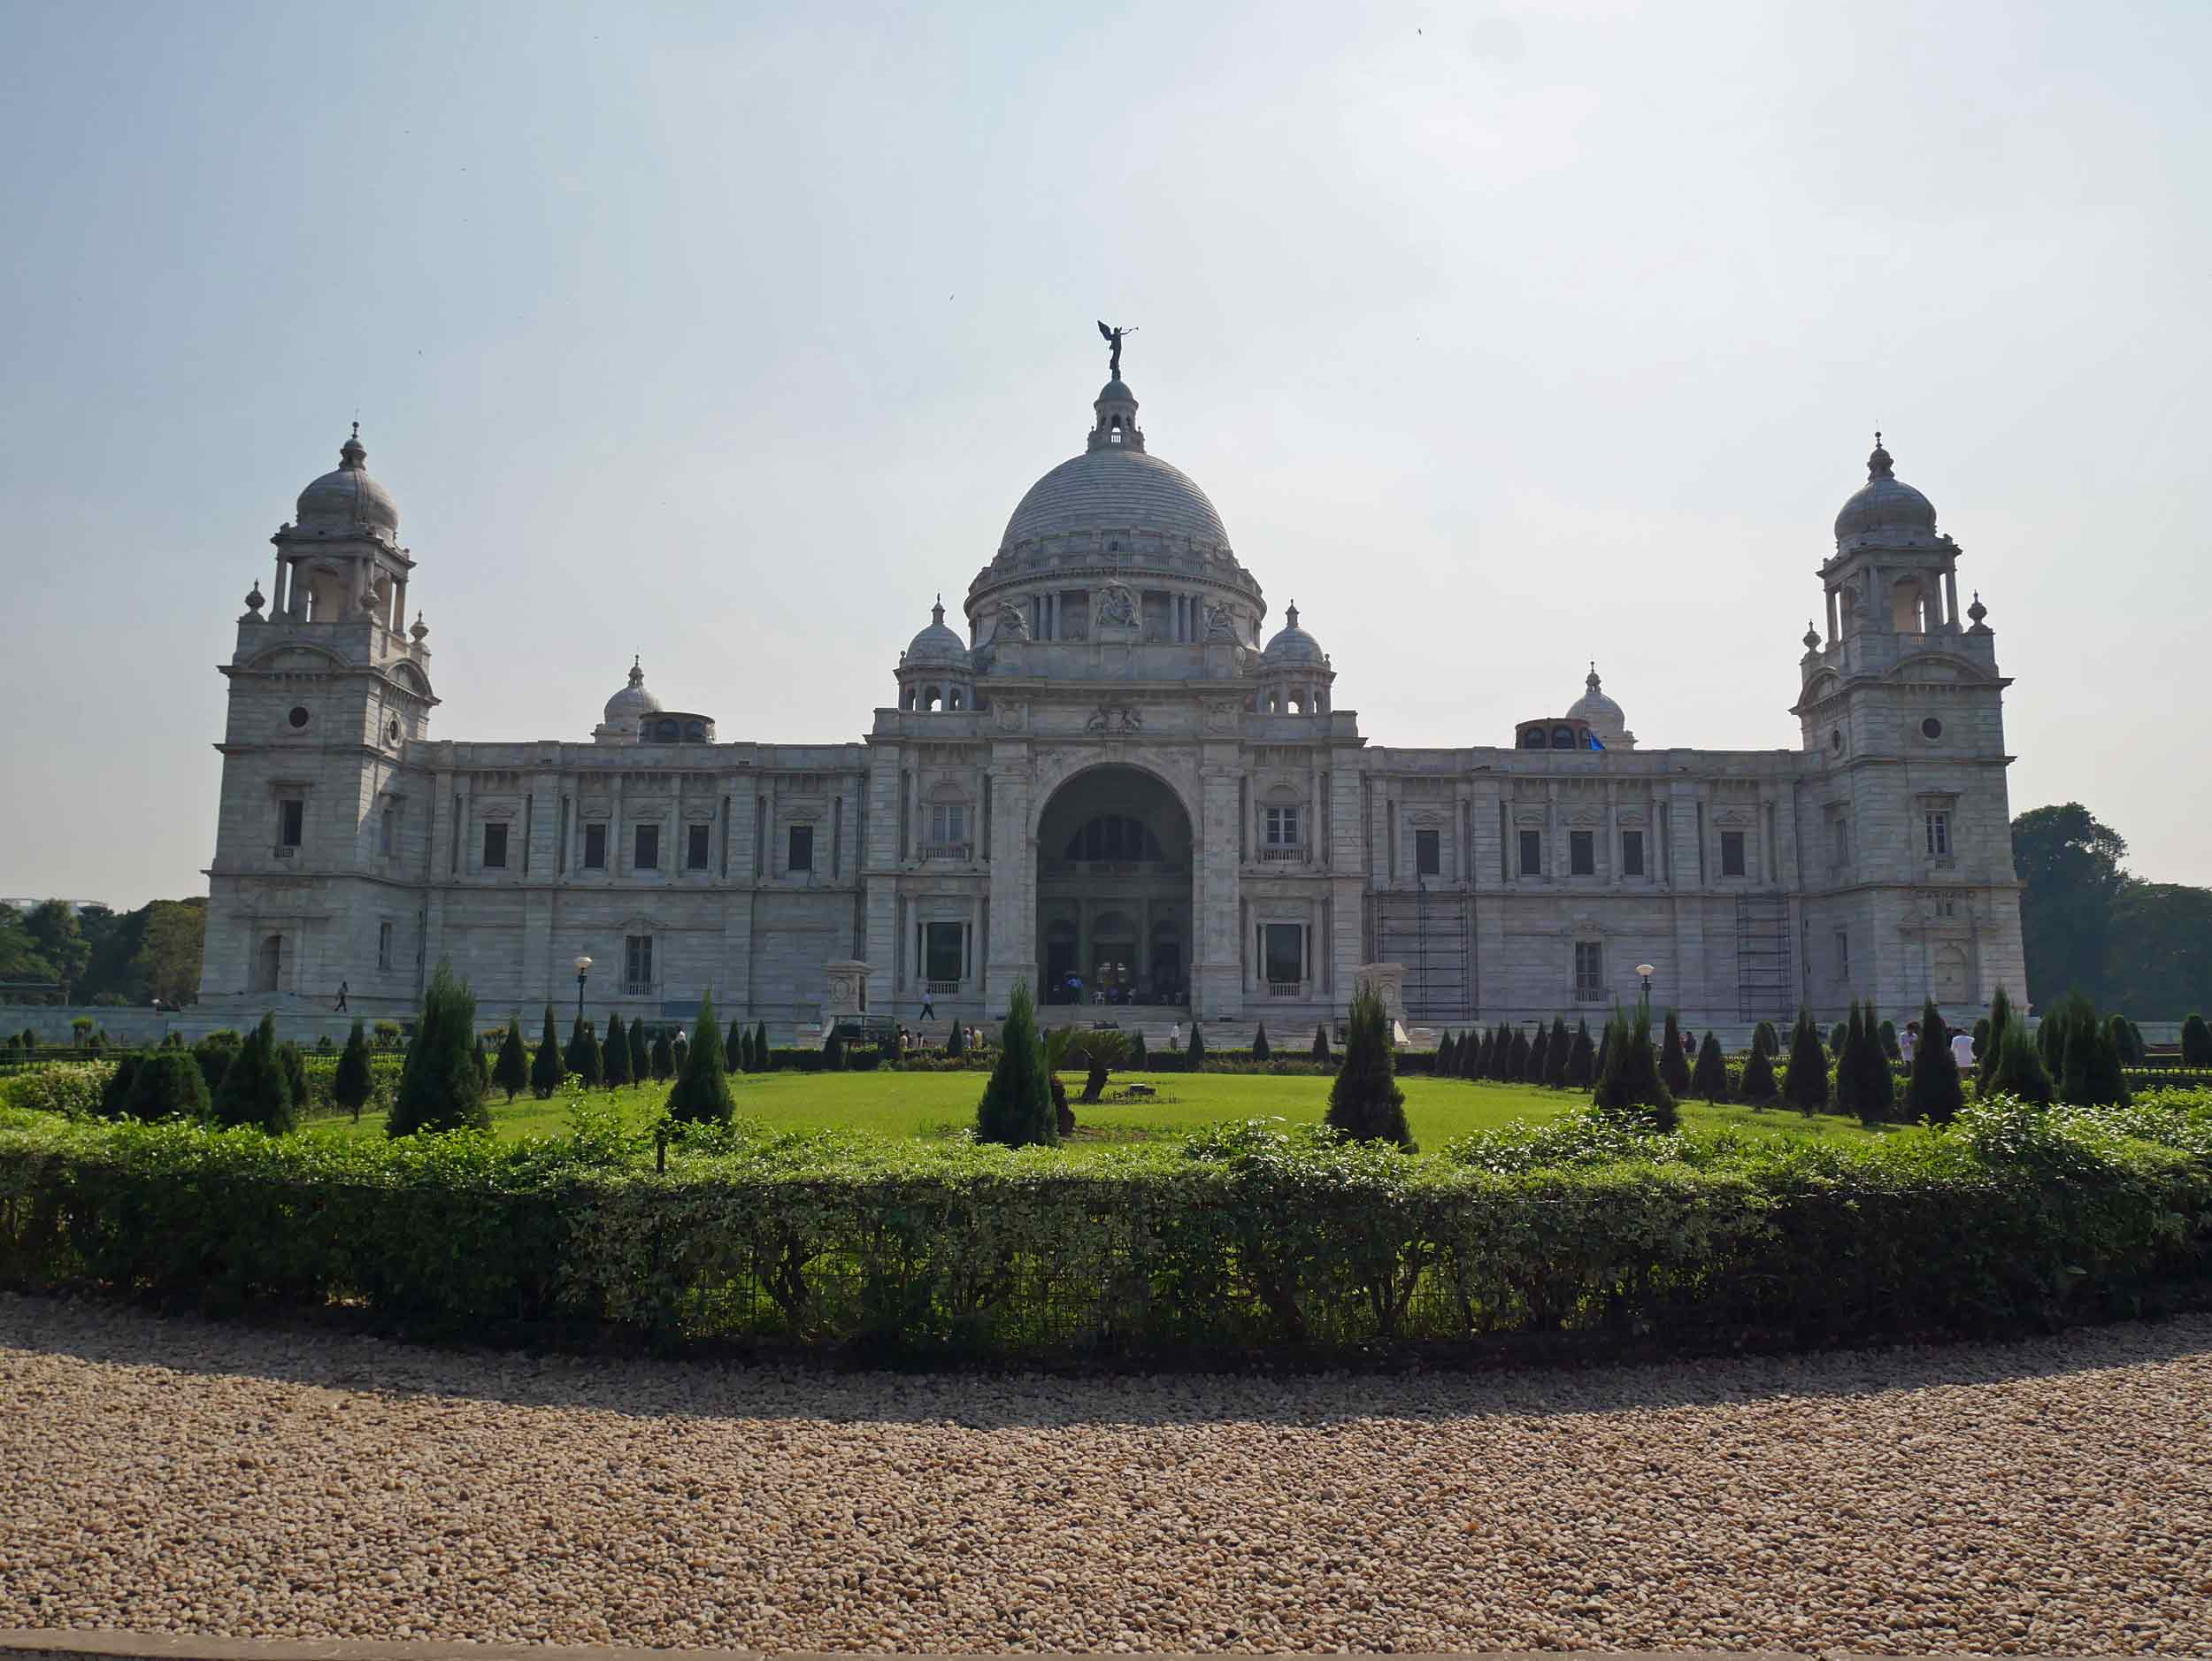 Dedicated to the memory of Queen Victoria, the memorial is now a museum and beautiful parkland for all to enjoy.